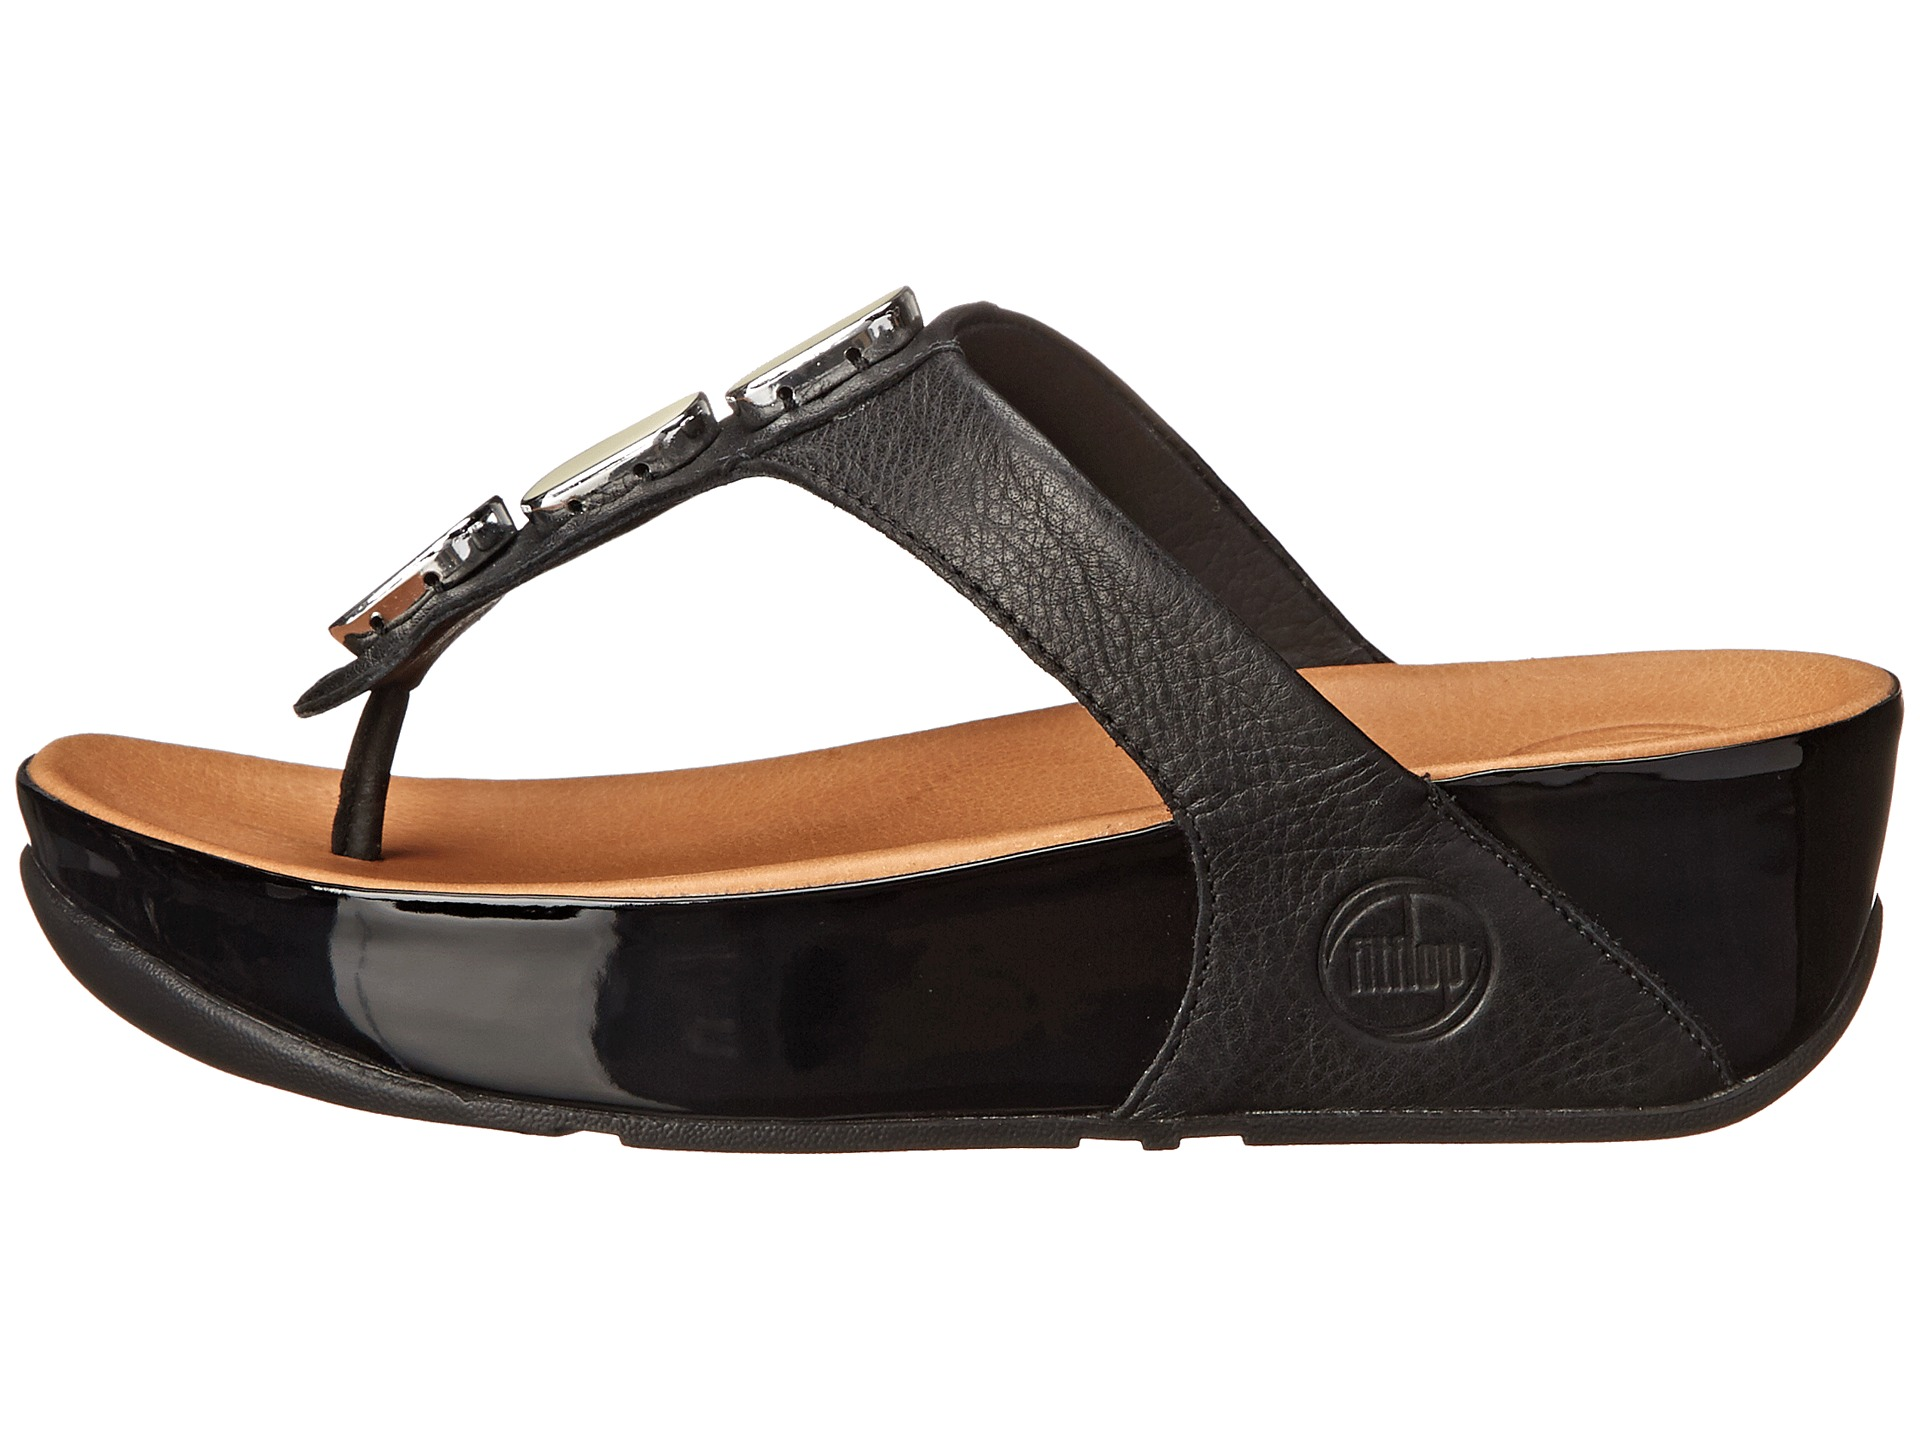 839516f78 Fitflop Pietra Ii Review